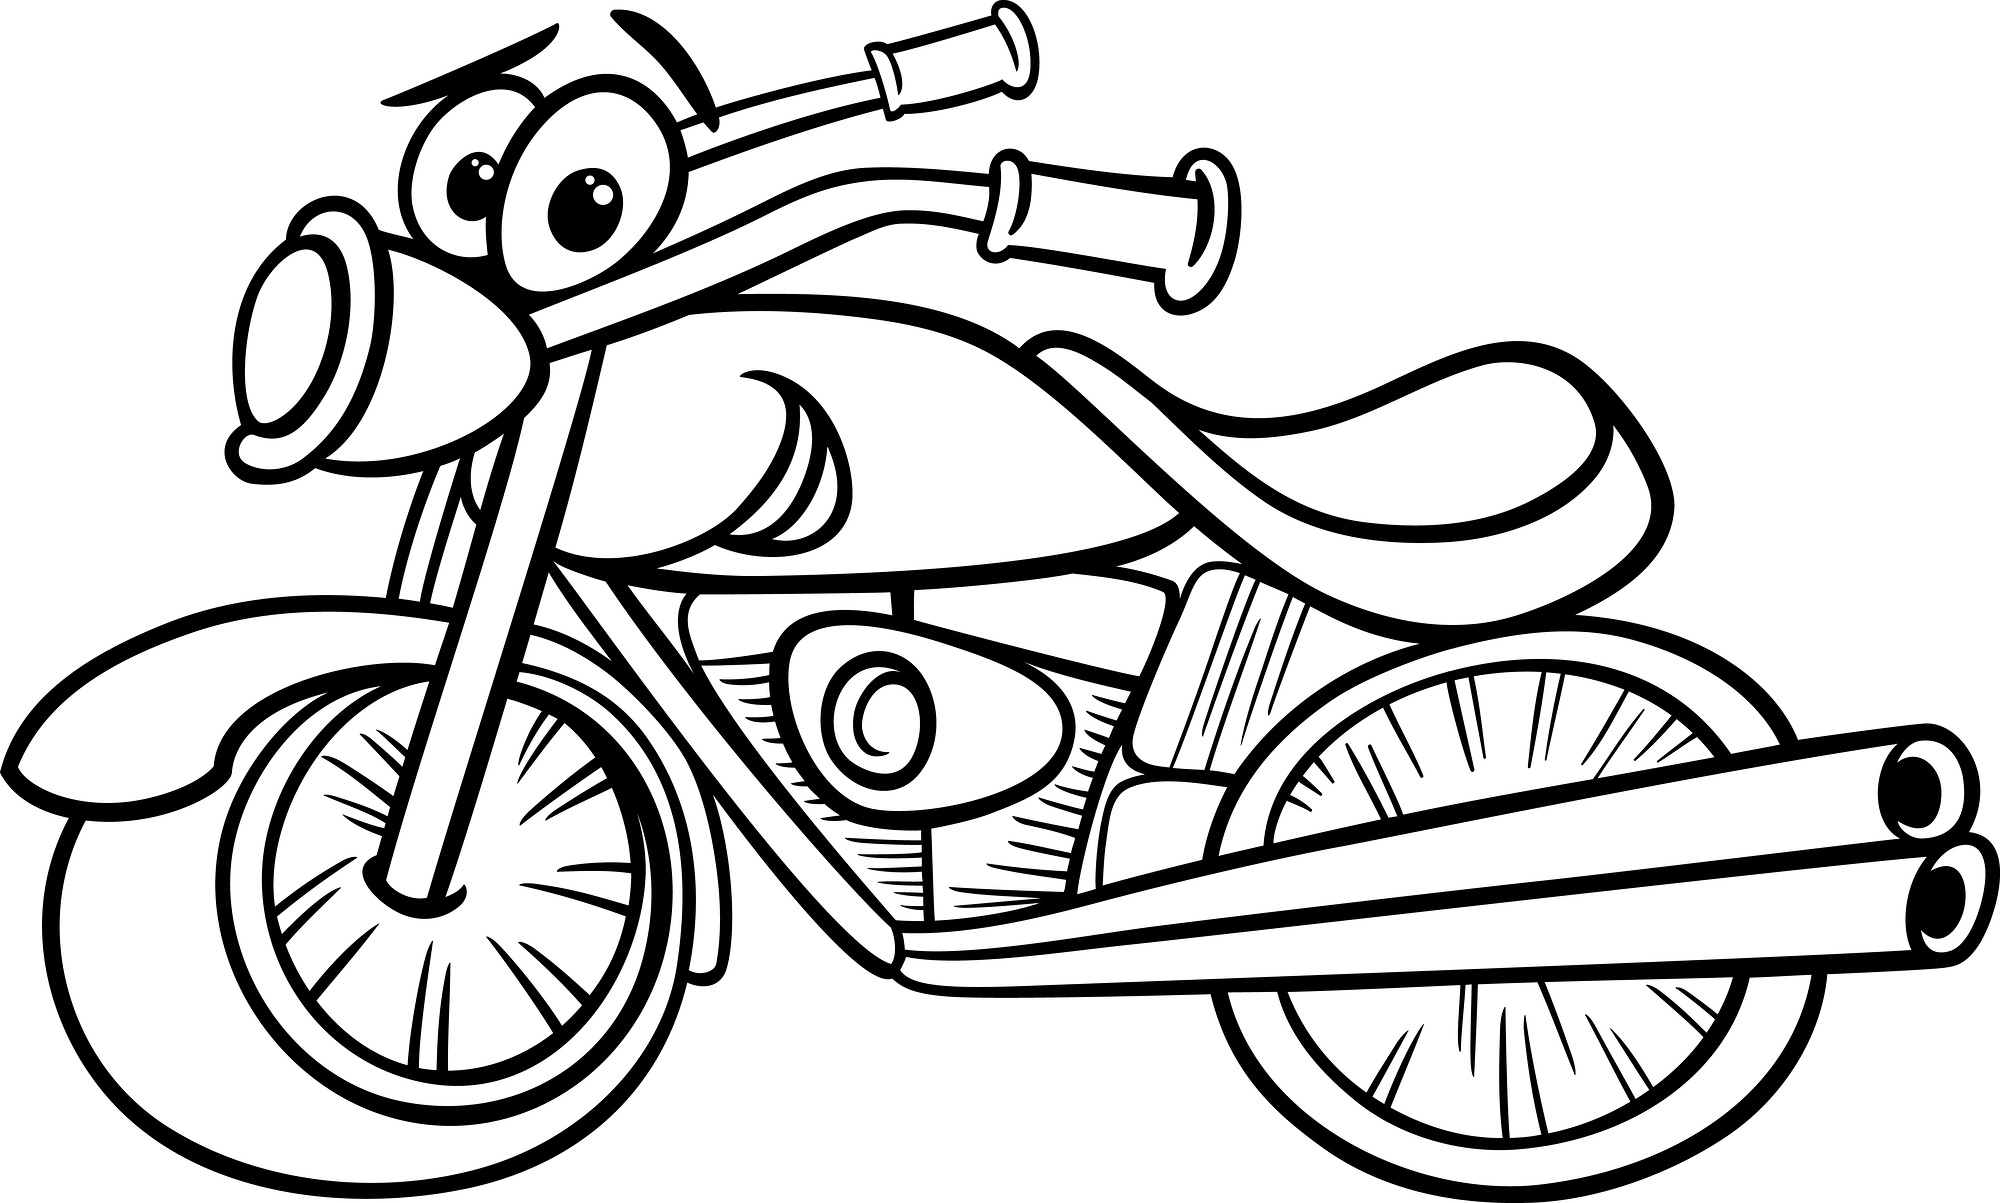 This is a graphic of Lively motocycle coloring page